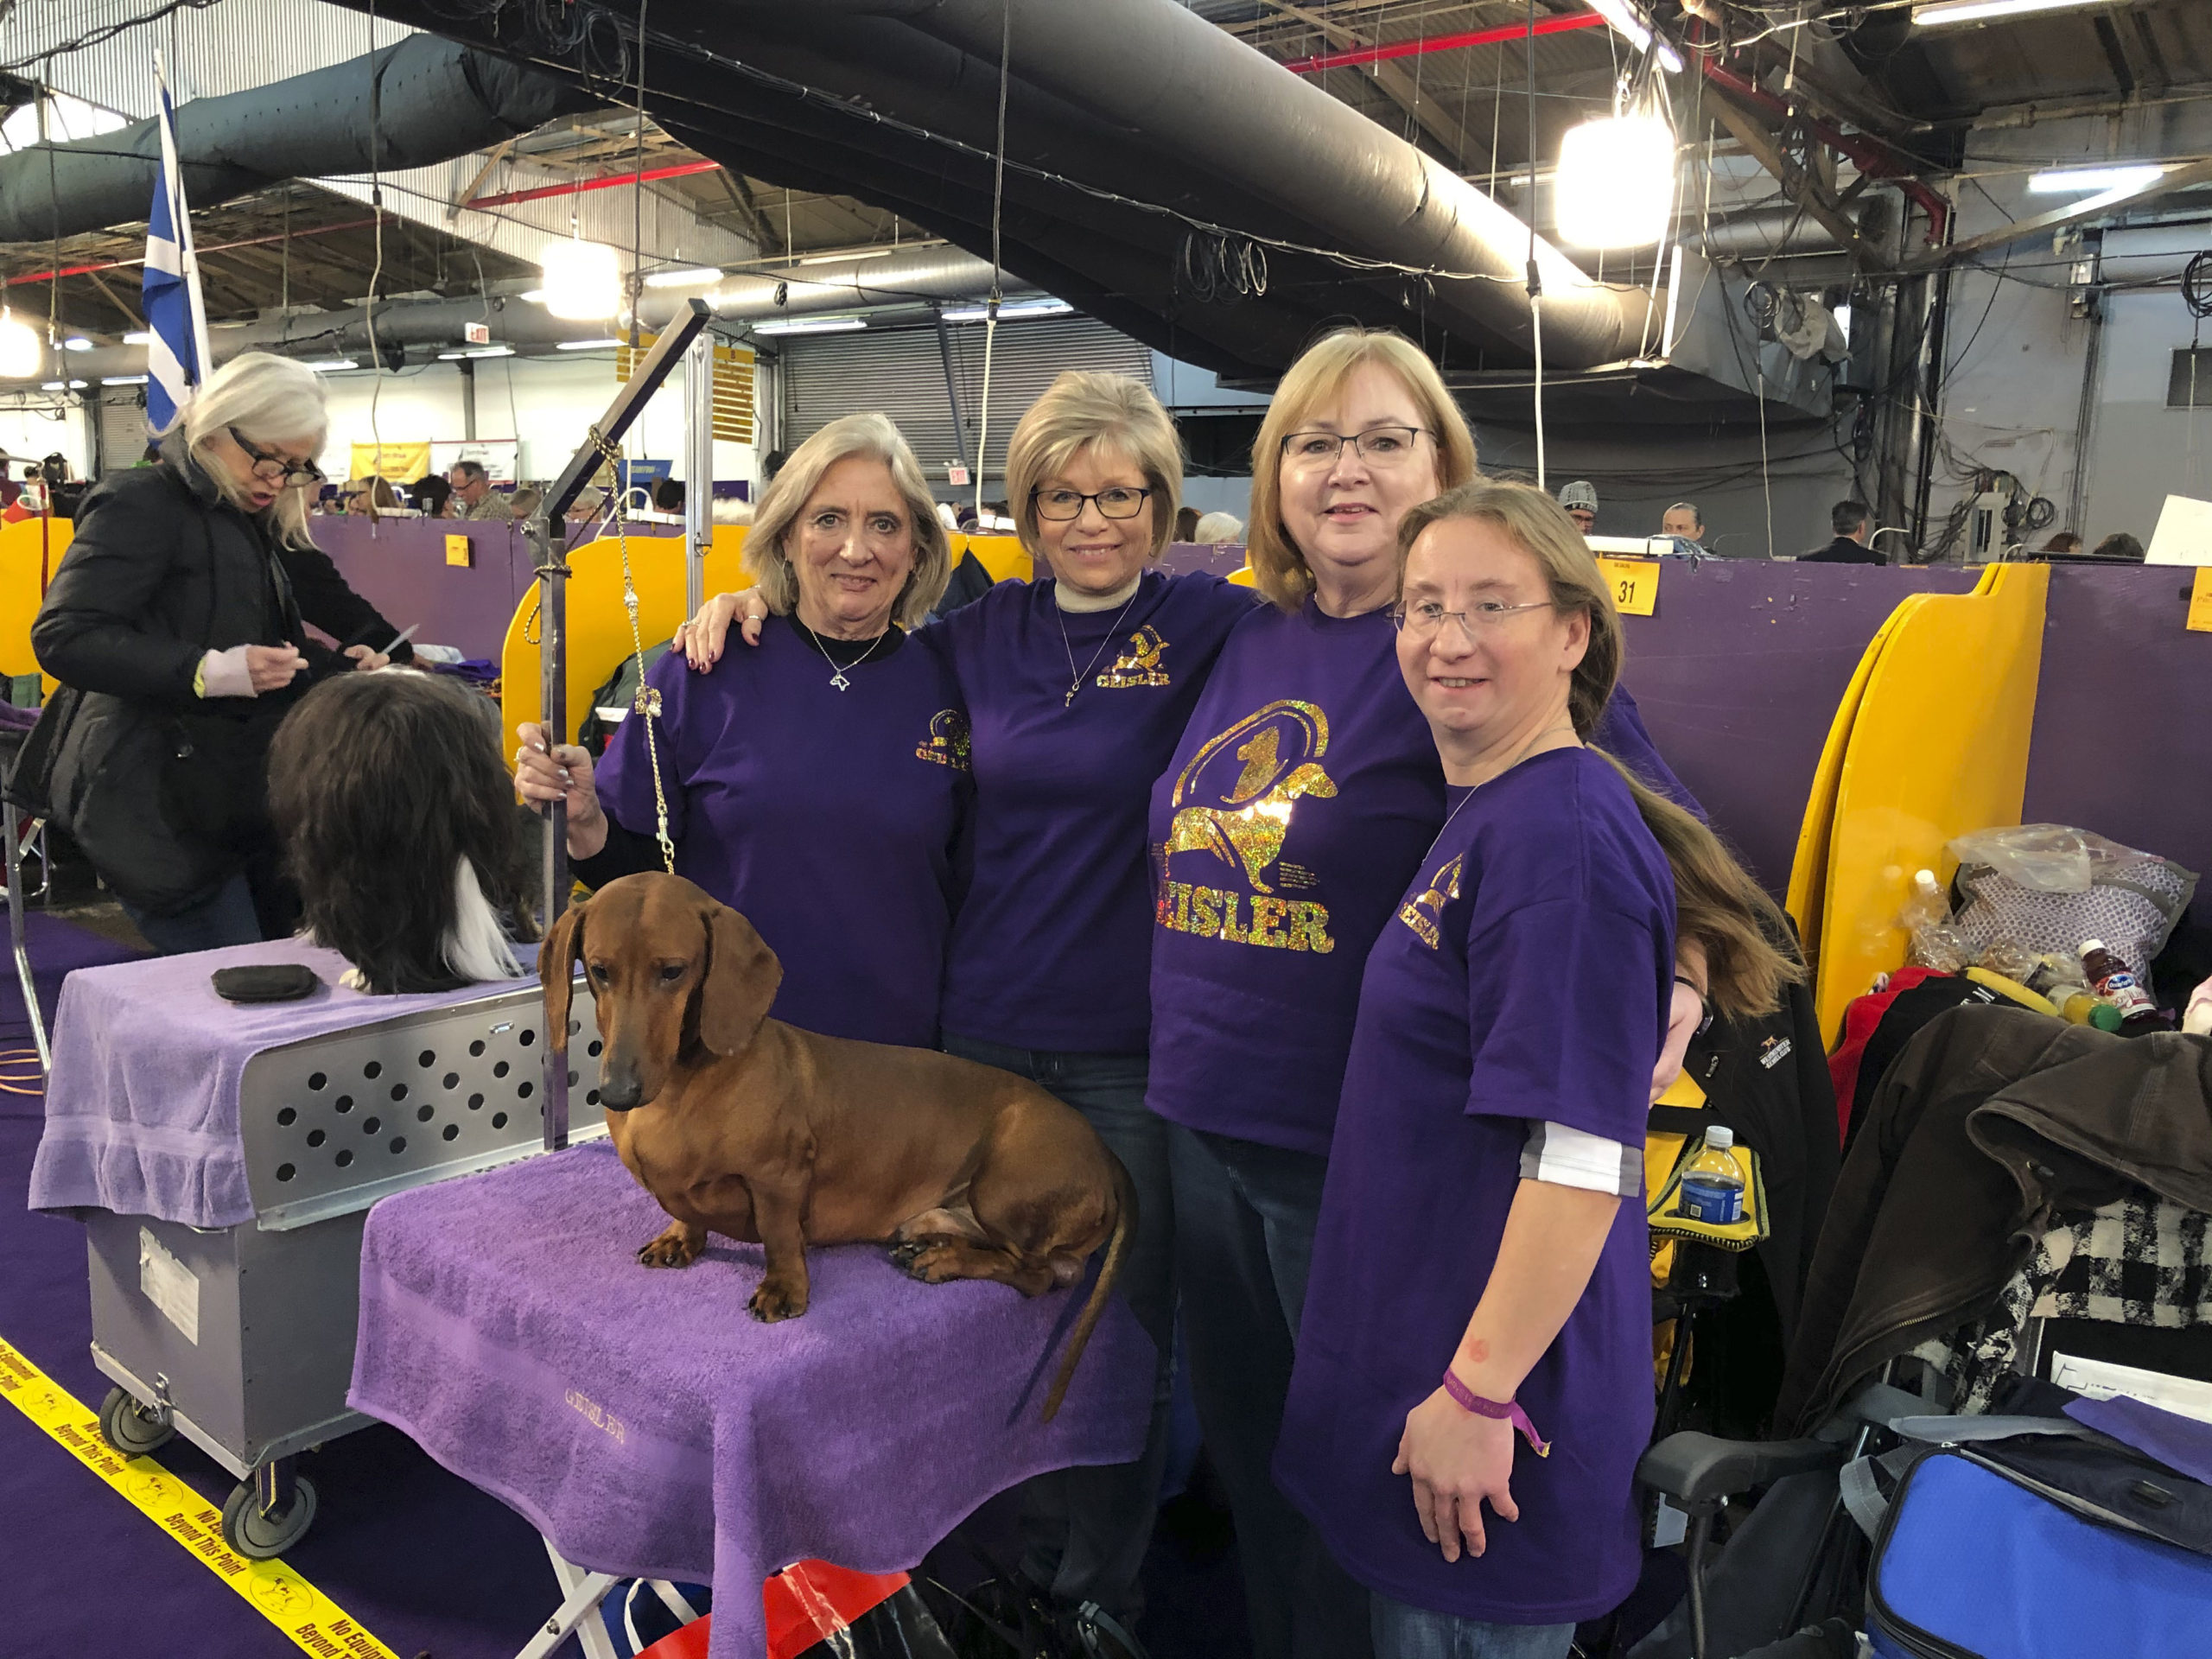 Southampton High School alum Alex Geisler, far right, with her Smooth Haired dachshund, Hammer, in the benching area of the Westminster Dog Show. SHELLY BORKOSKI